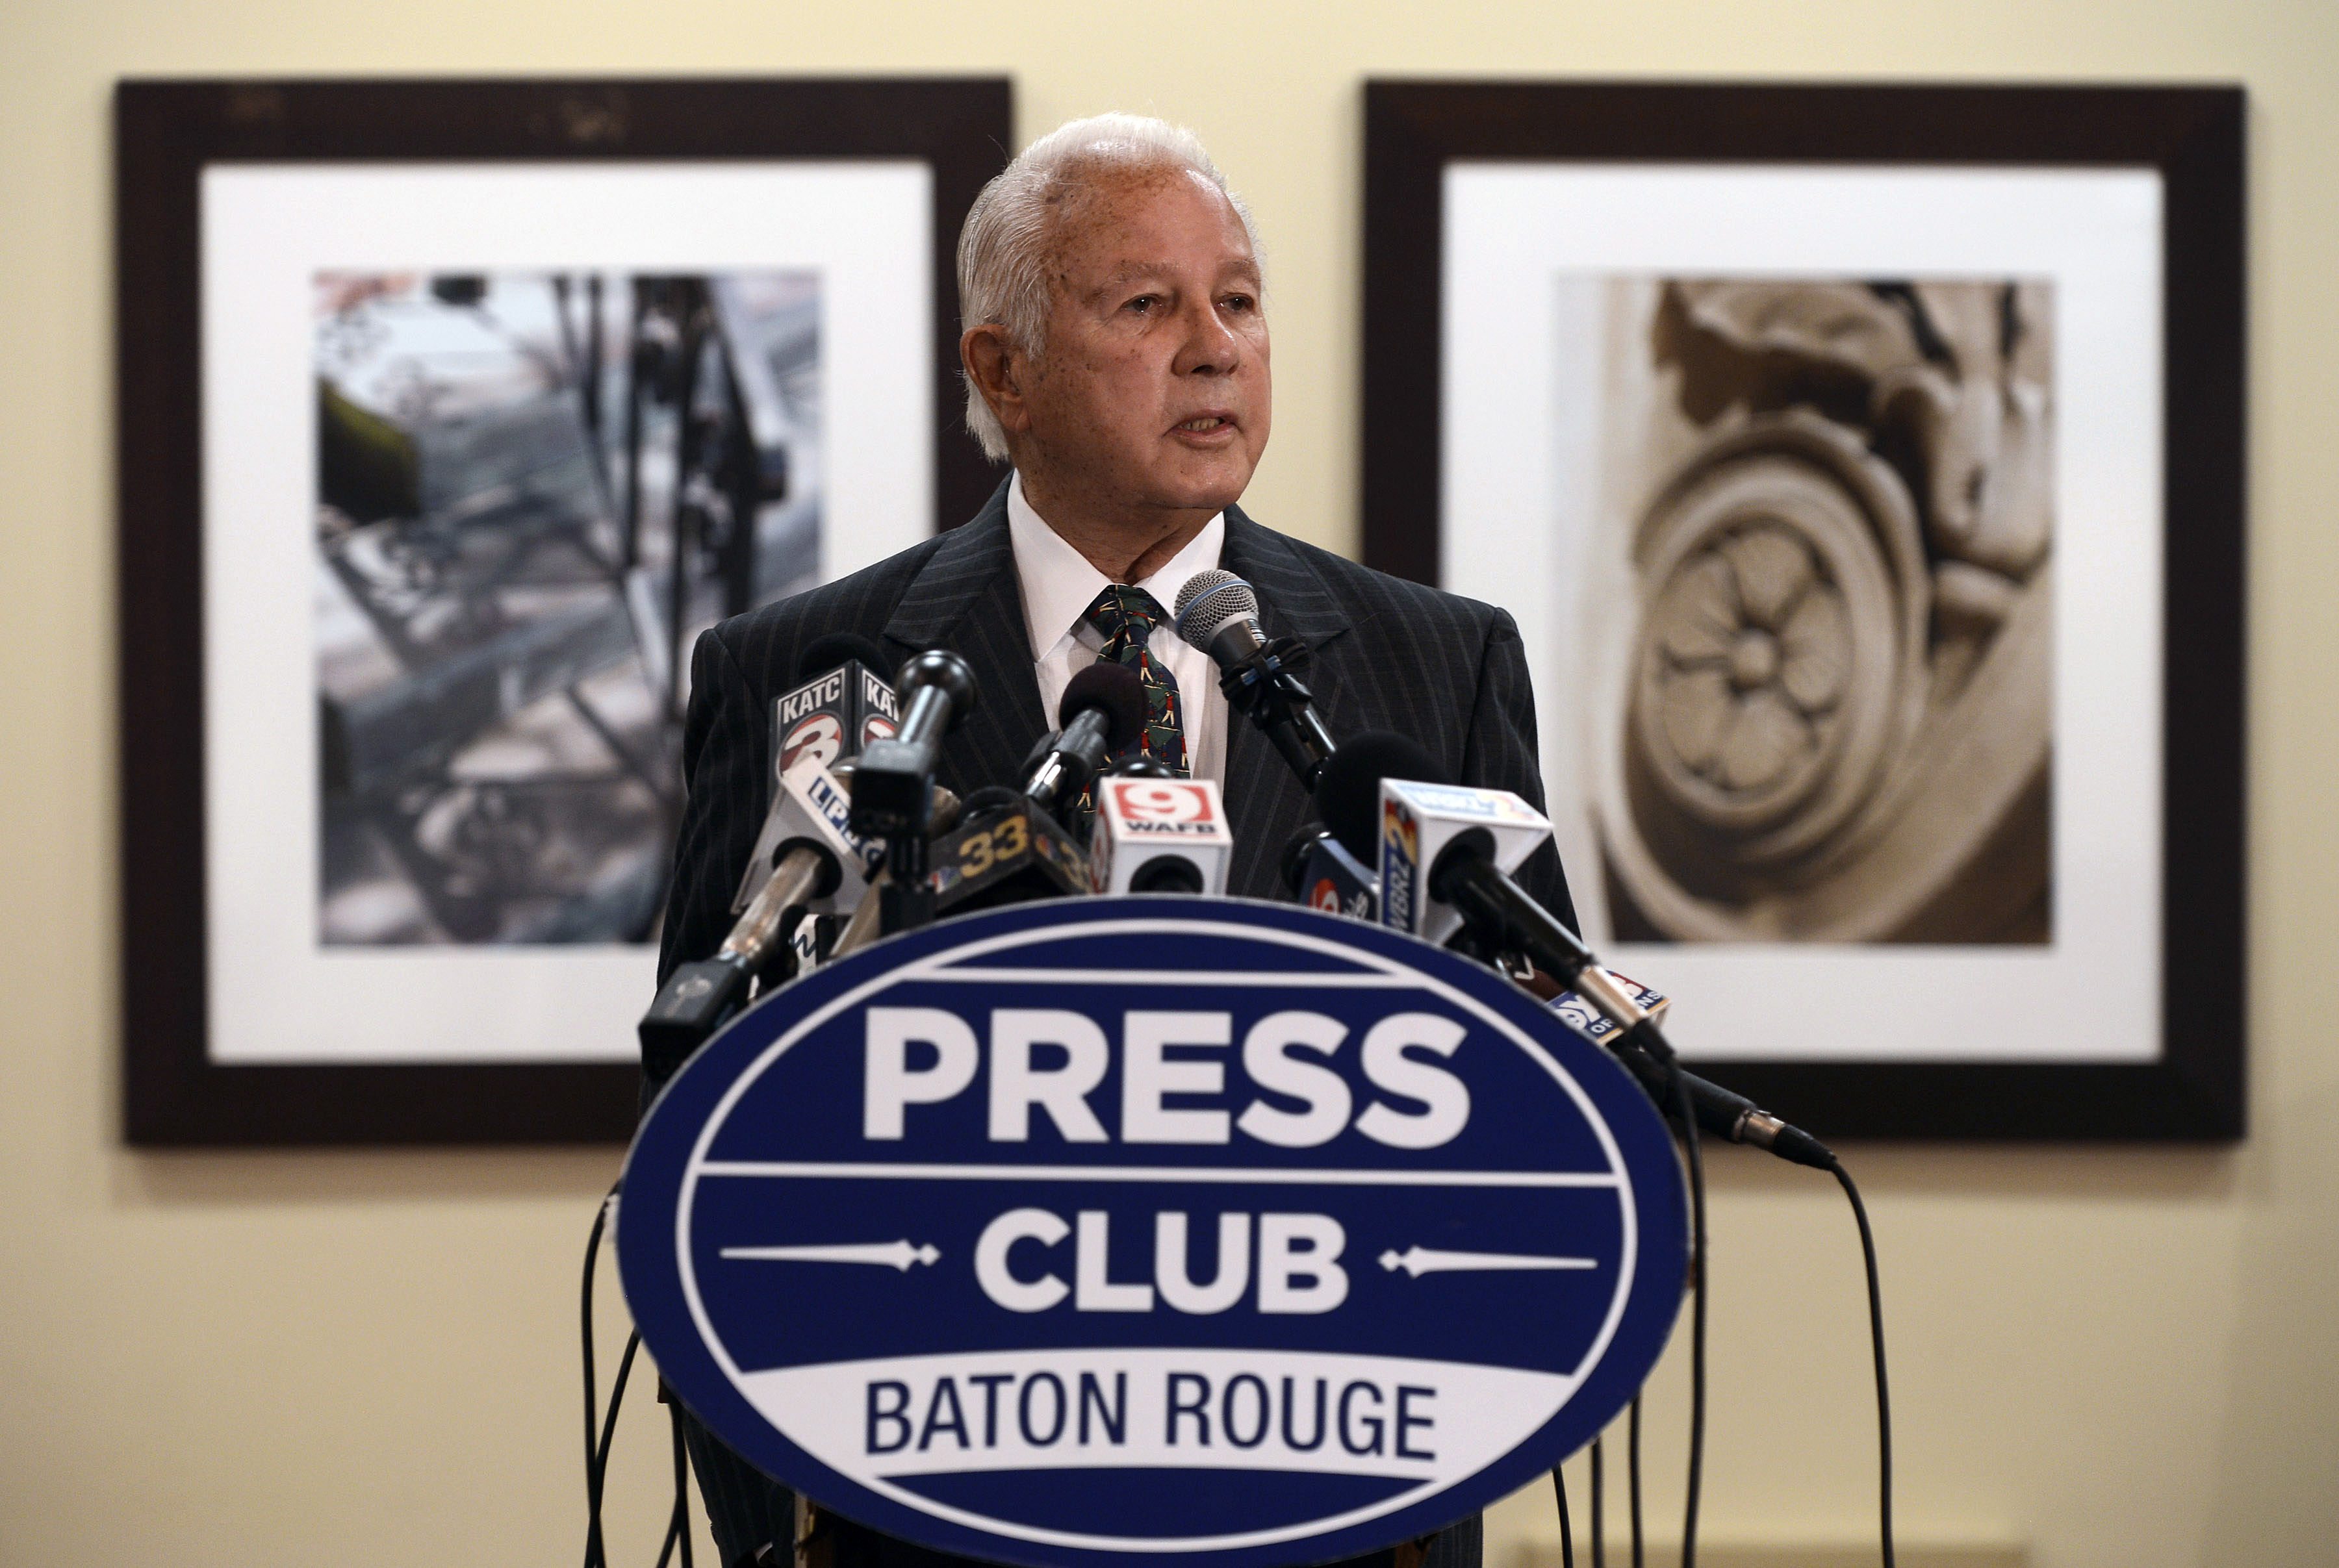 After serving prison sentence, former Louisiana Gov. Edwards to run for Congress